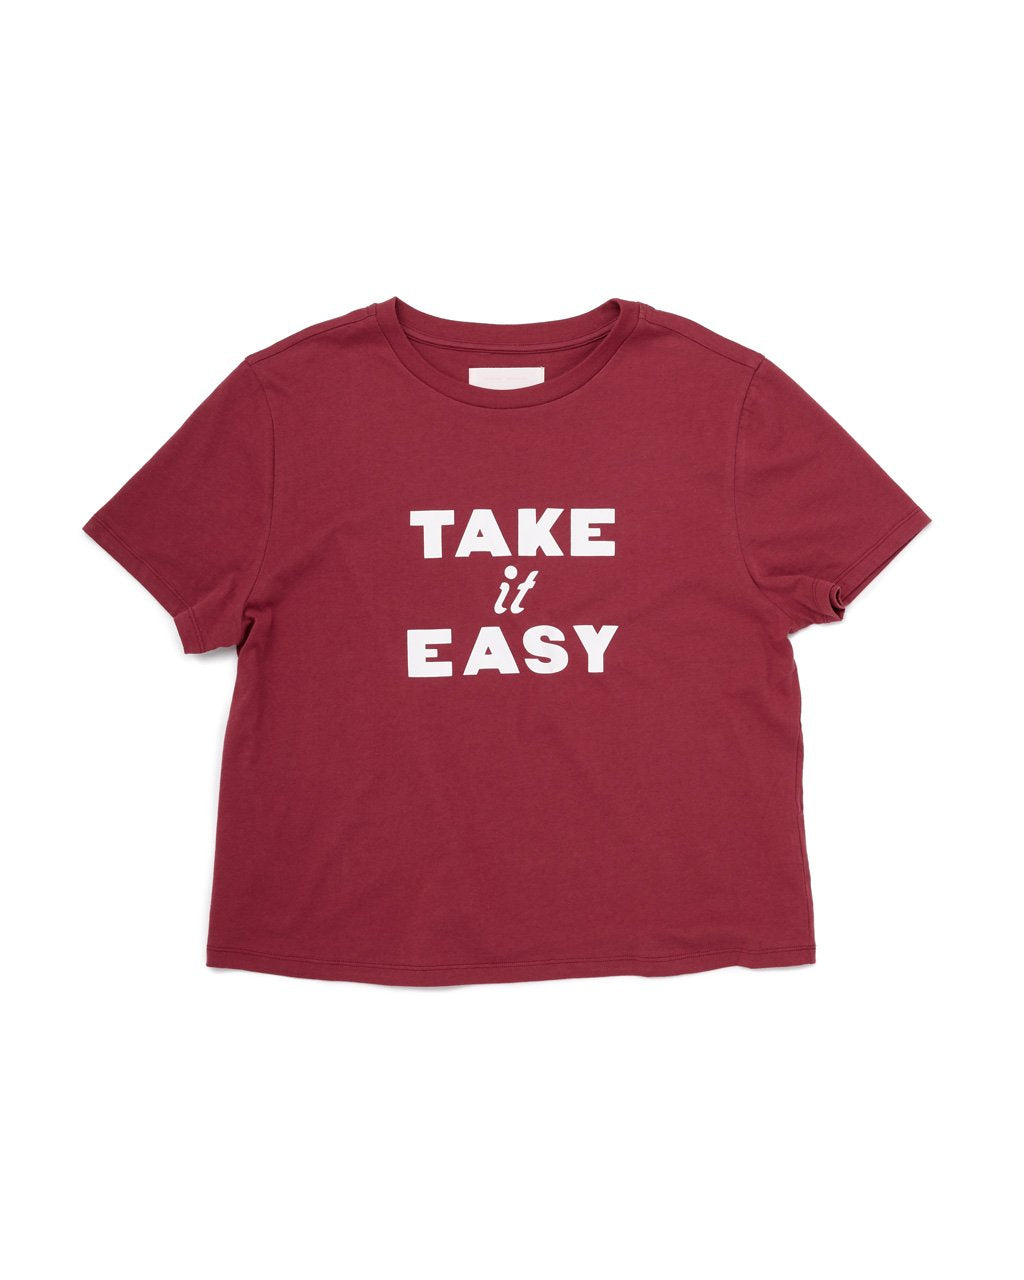 Dark red boxy tee with white lettering Take It Easy.